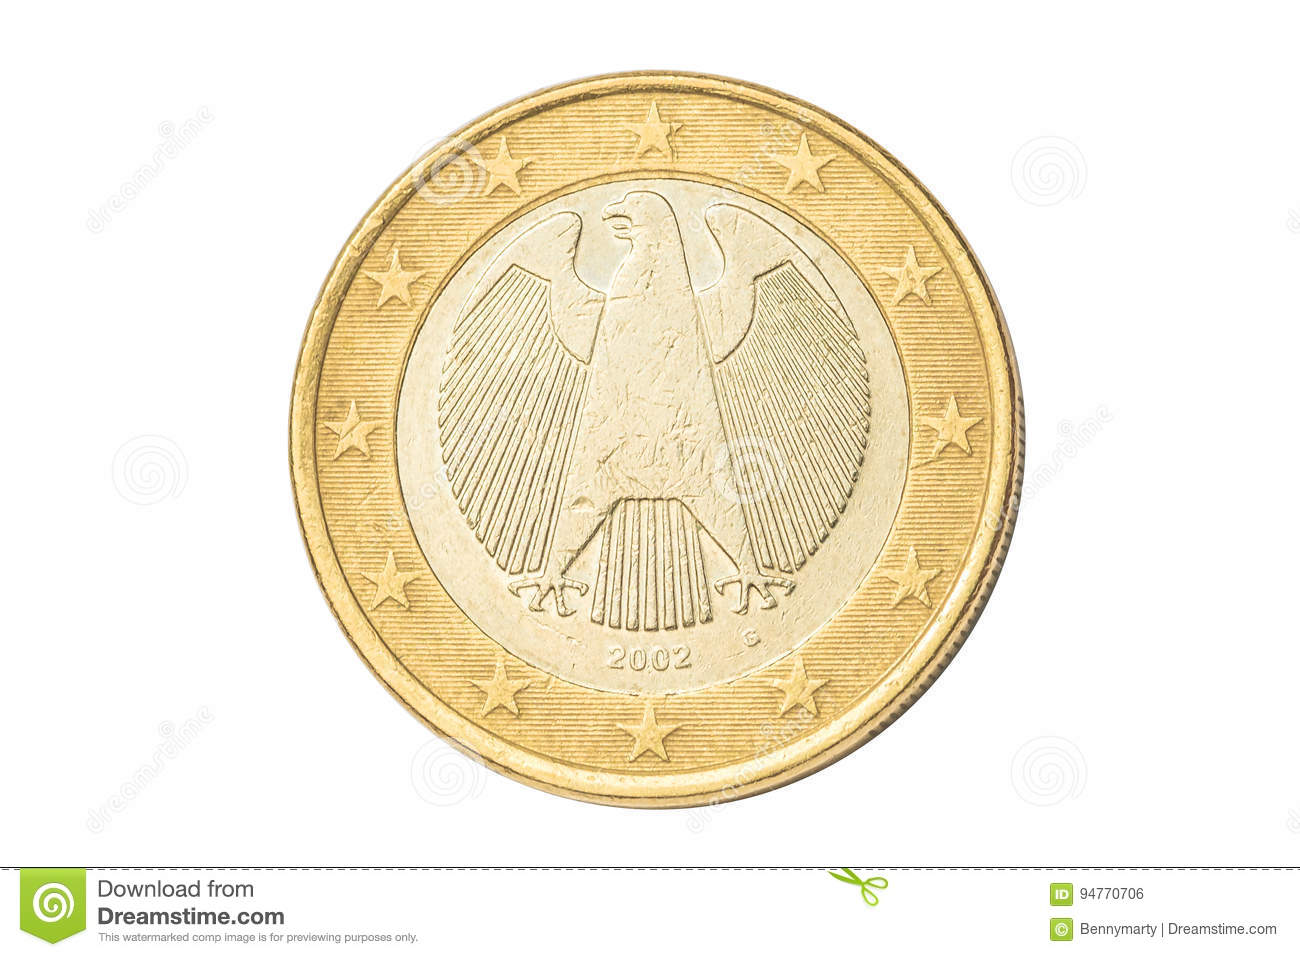 Germany One Euro Coin Stock Photo Image Of Cash Fund 94770706